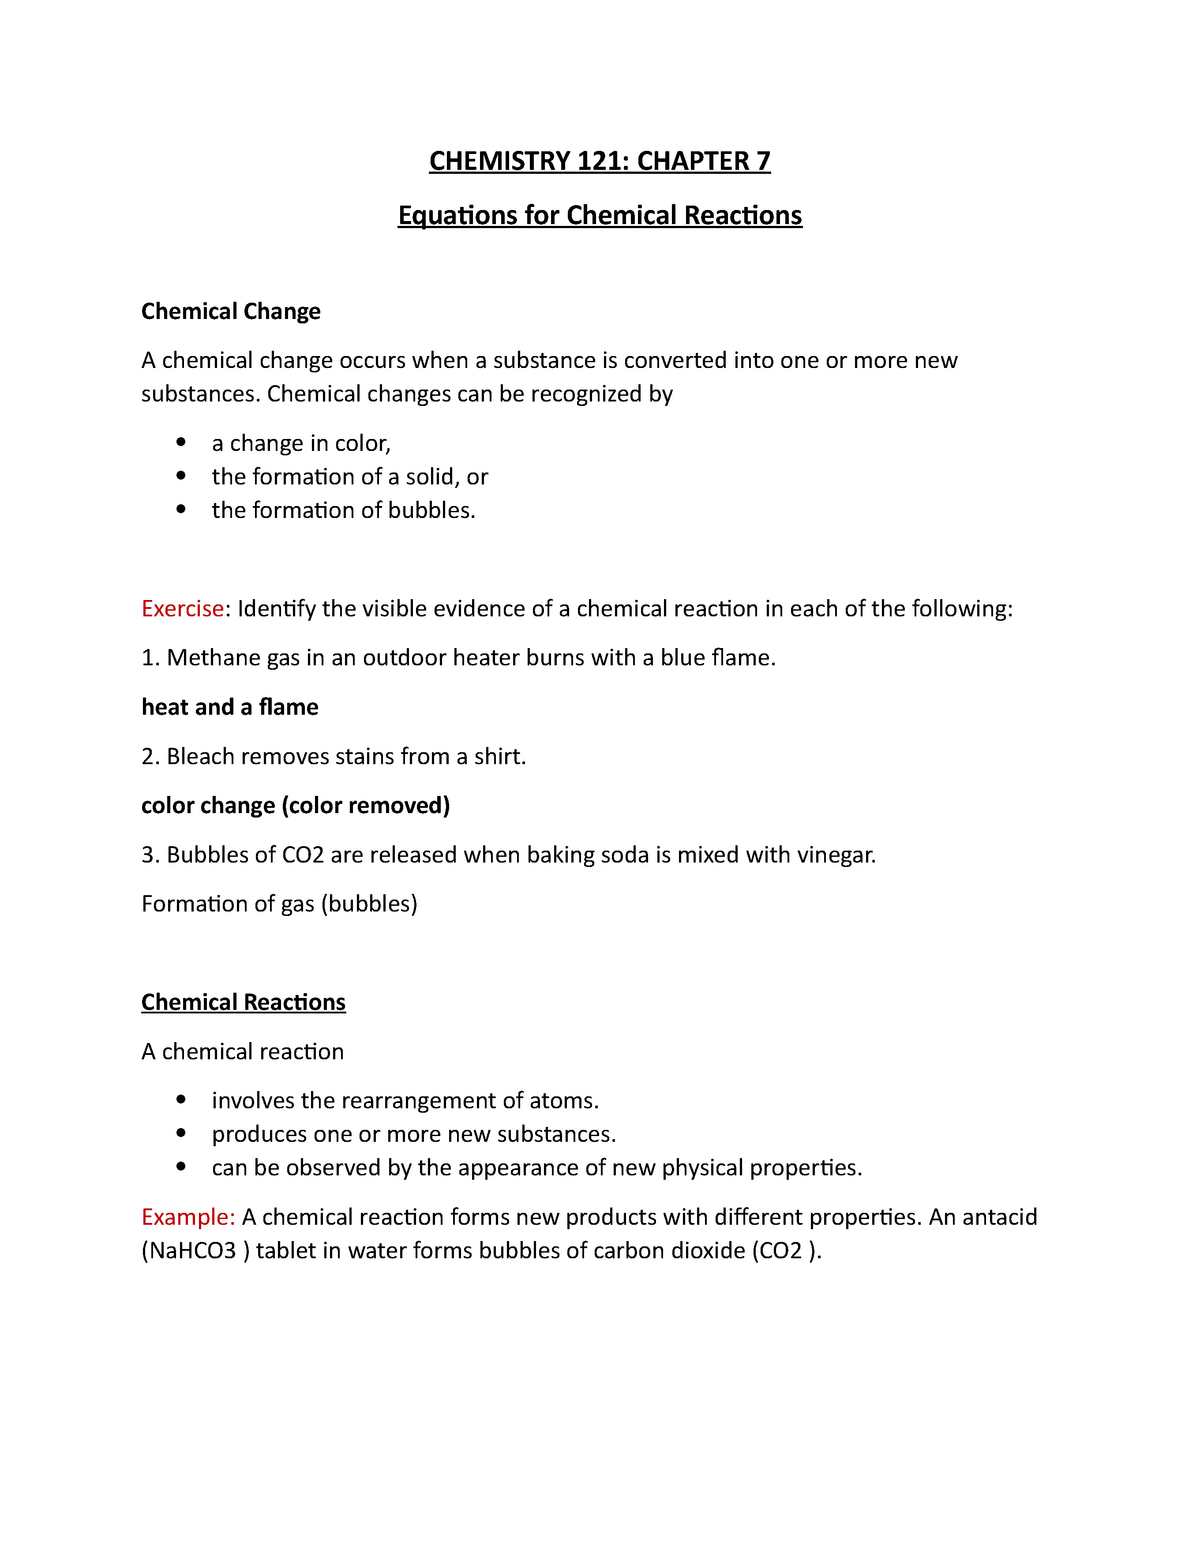 CHE 121 Chap 7 - Equations for Chemical Reactions - CHE 202